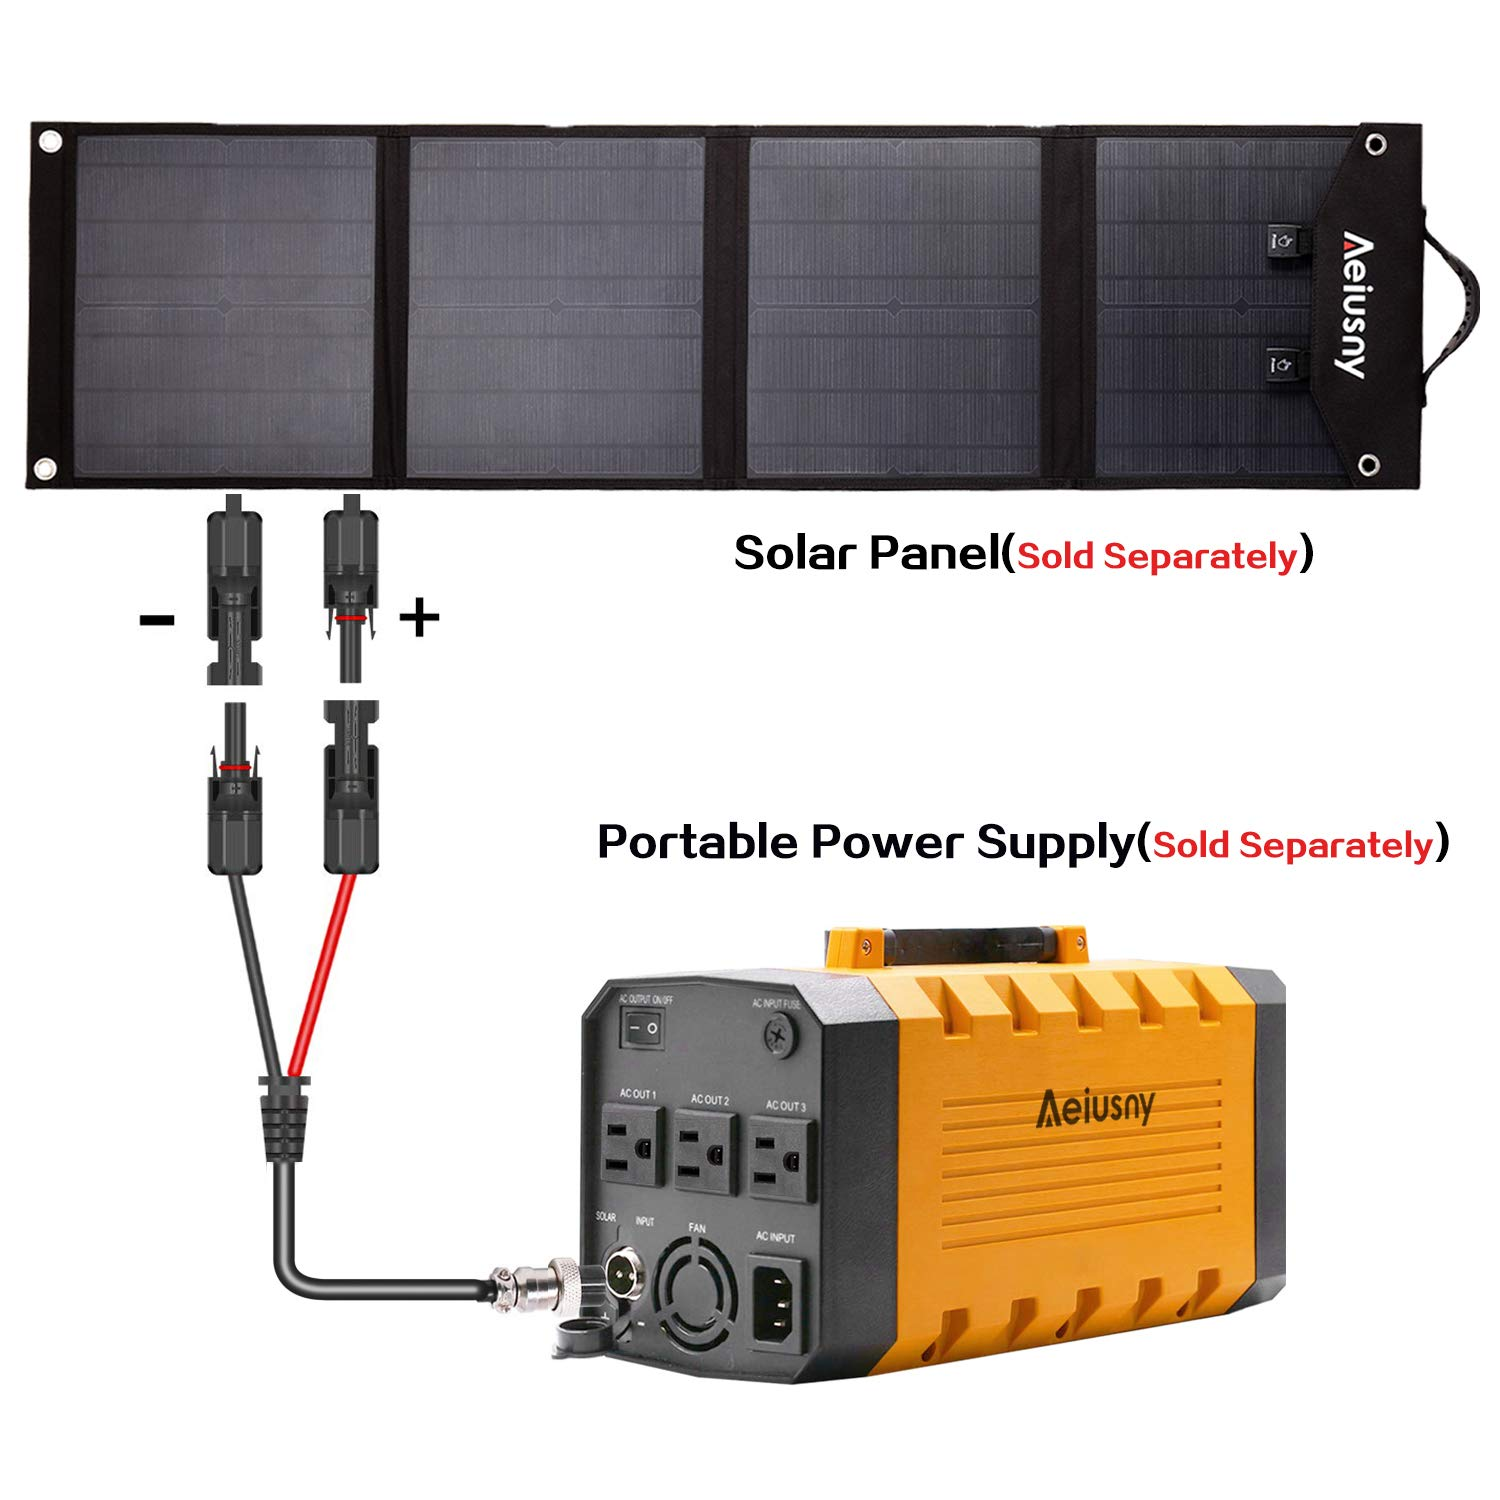 Aeiusny Solar Panel Cable MC4 Connector Adapter Cable Portable Inverter Generator UPS Battery Backup Solar Charging by Aeiusny (Image #5)